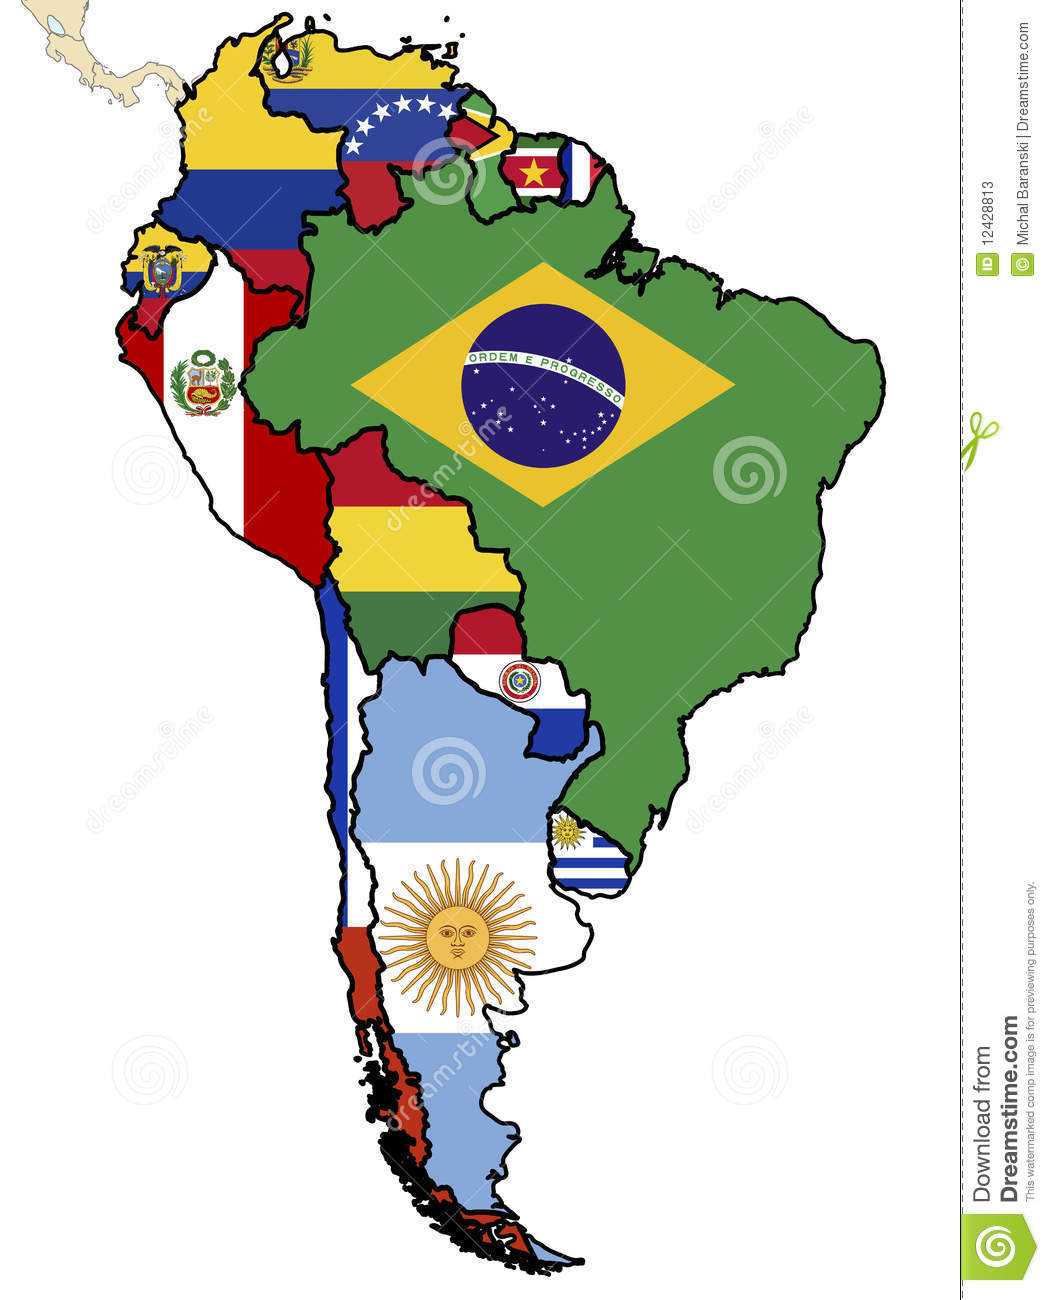 Political Map Of South America Stock Illustration - Illustration of ...